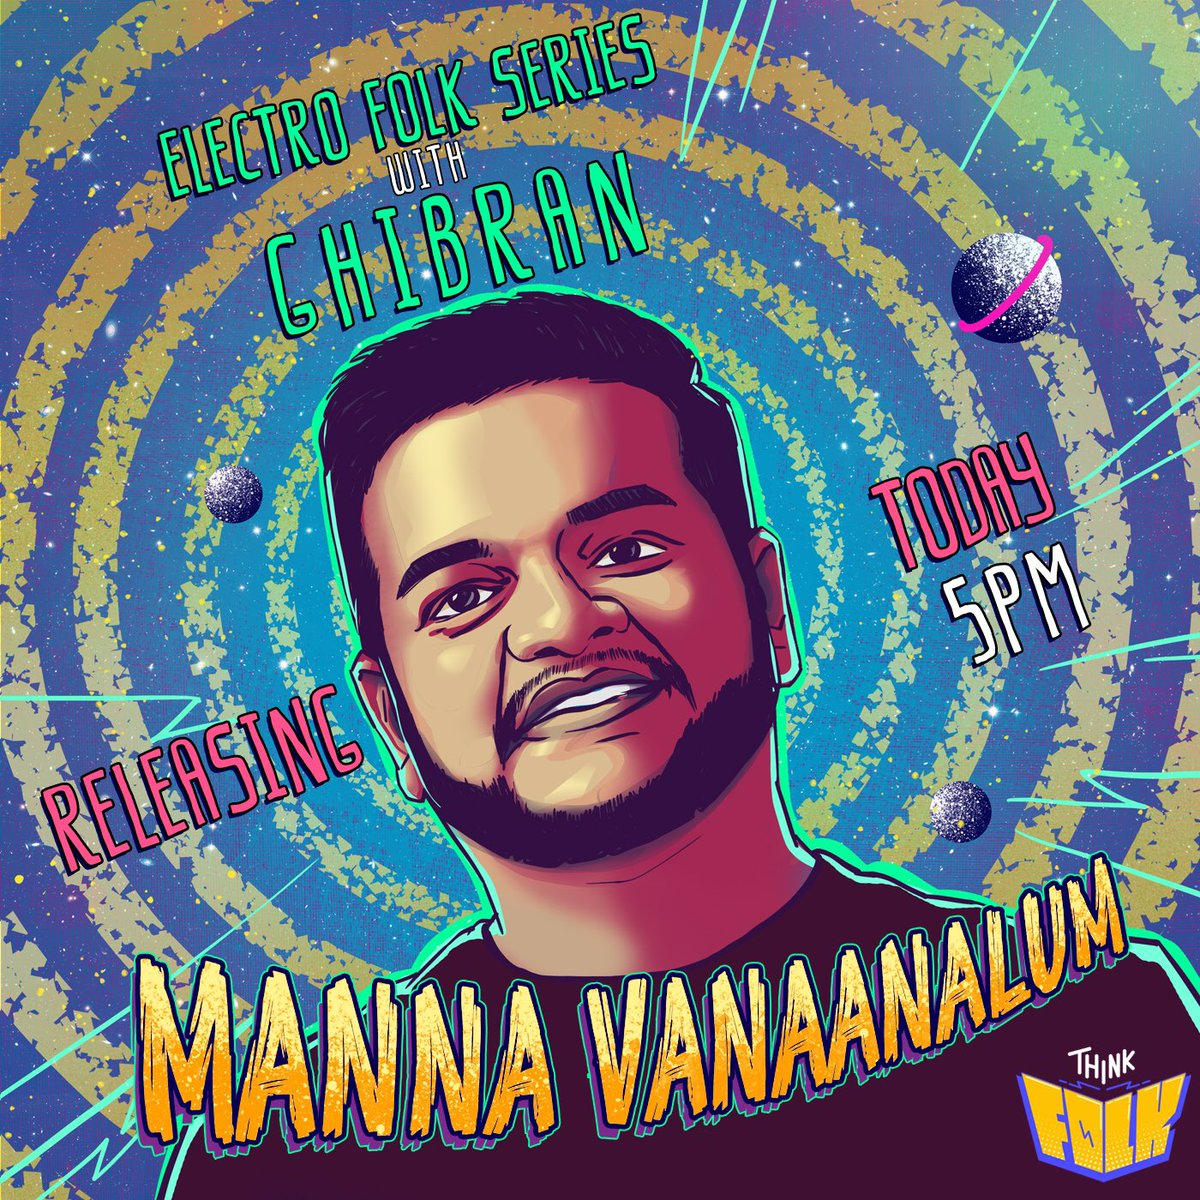 Fans , Are you ready to experience folk music like never before !! #ThinkFolk 🤔🥁   ®️edefining Folk Music  ! The First Track #Mannavanaanalum from #ElectroFolkSeries with @GhibranOfficial releasing today at 5 PM !